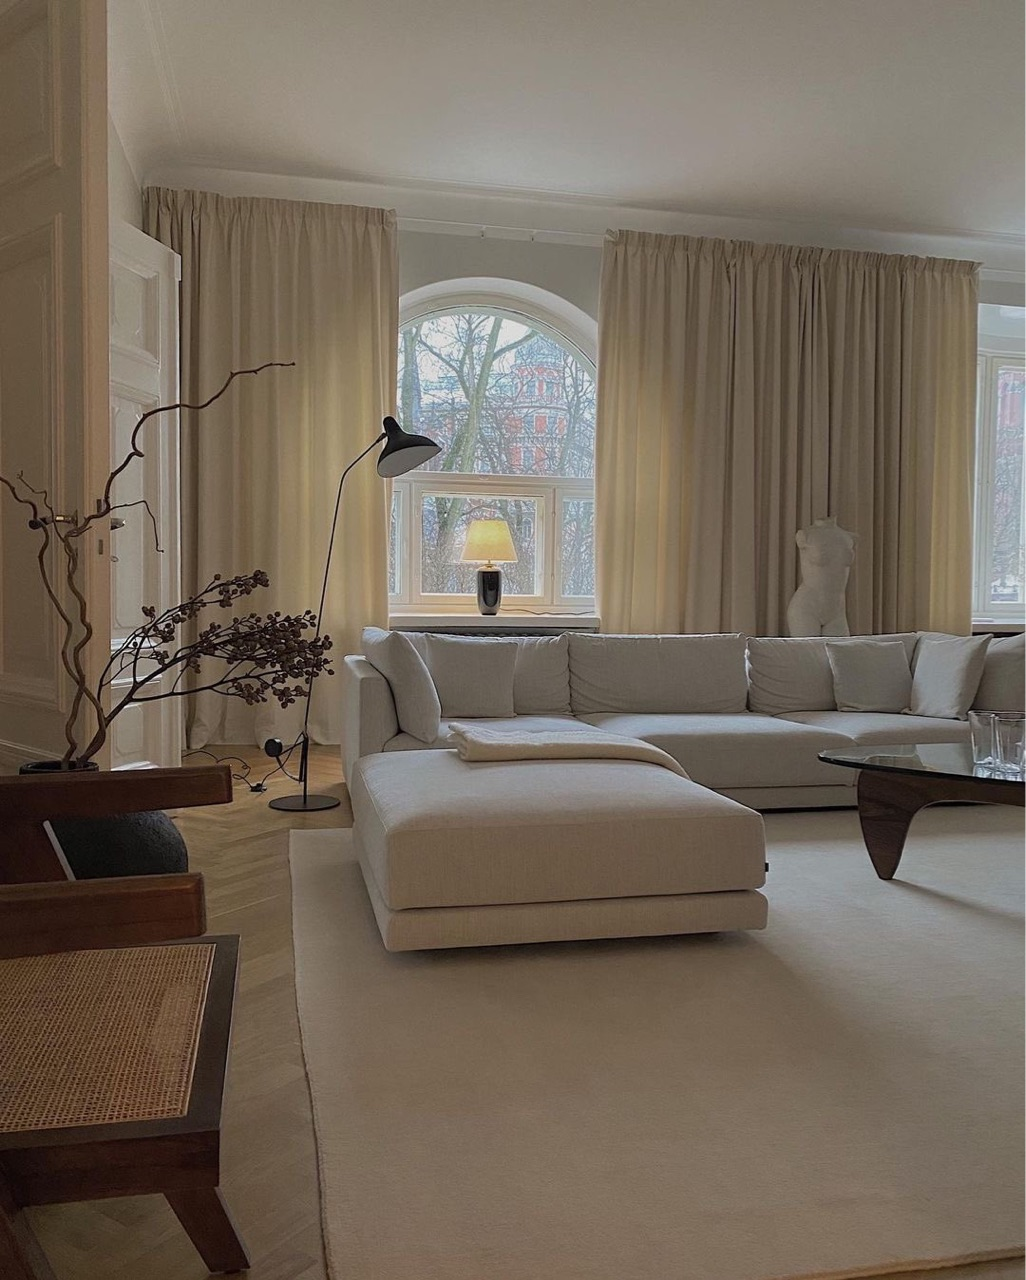 aesthetic and interior image